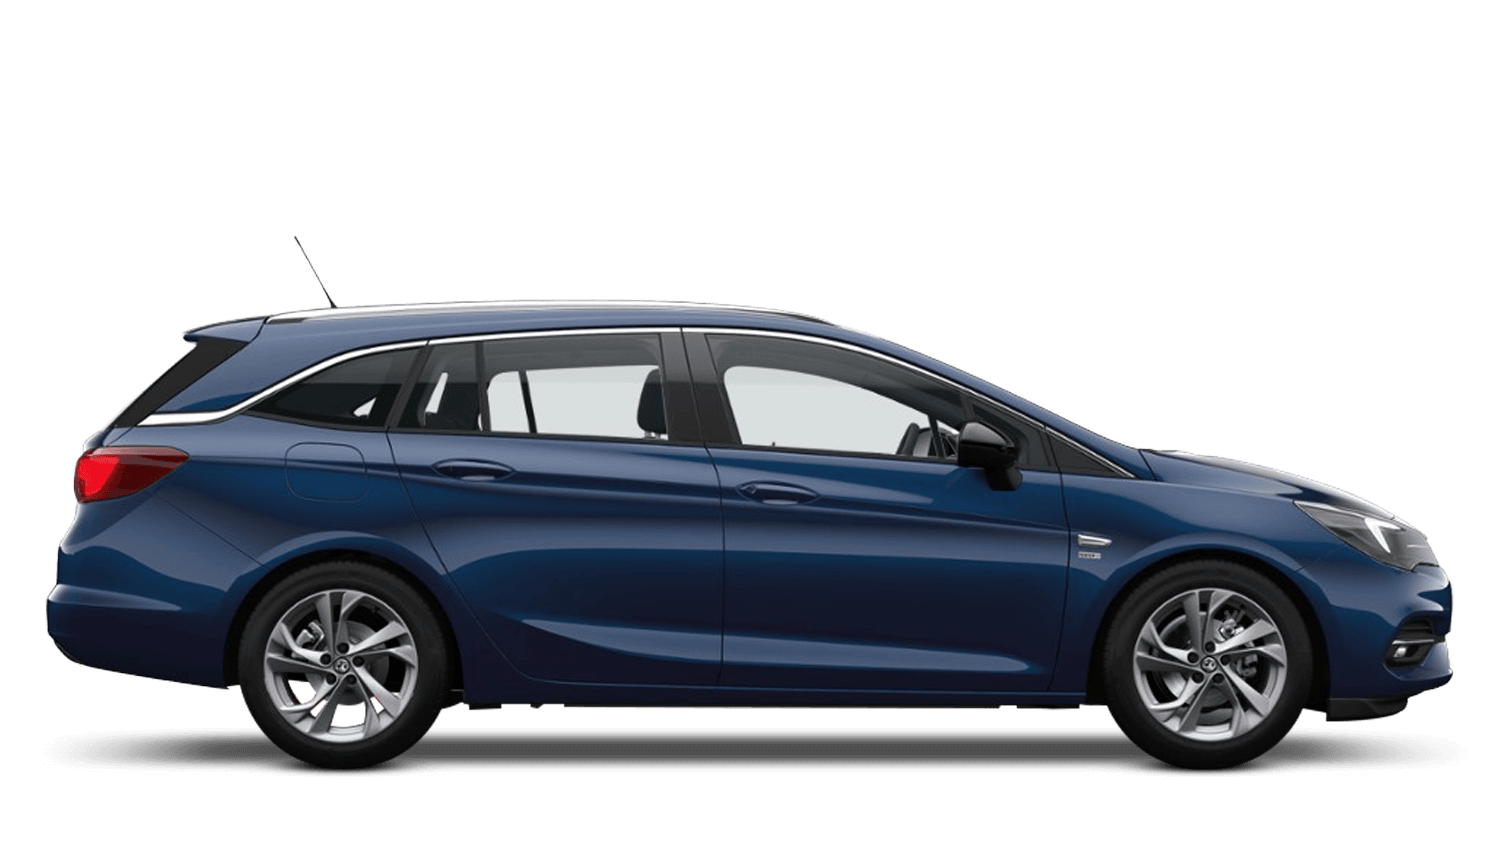 Navy Blue (Metallic) New Vauxhall Astra Sports Tourer